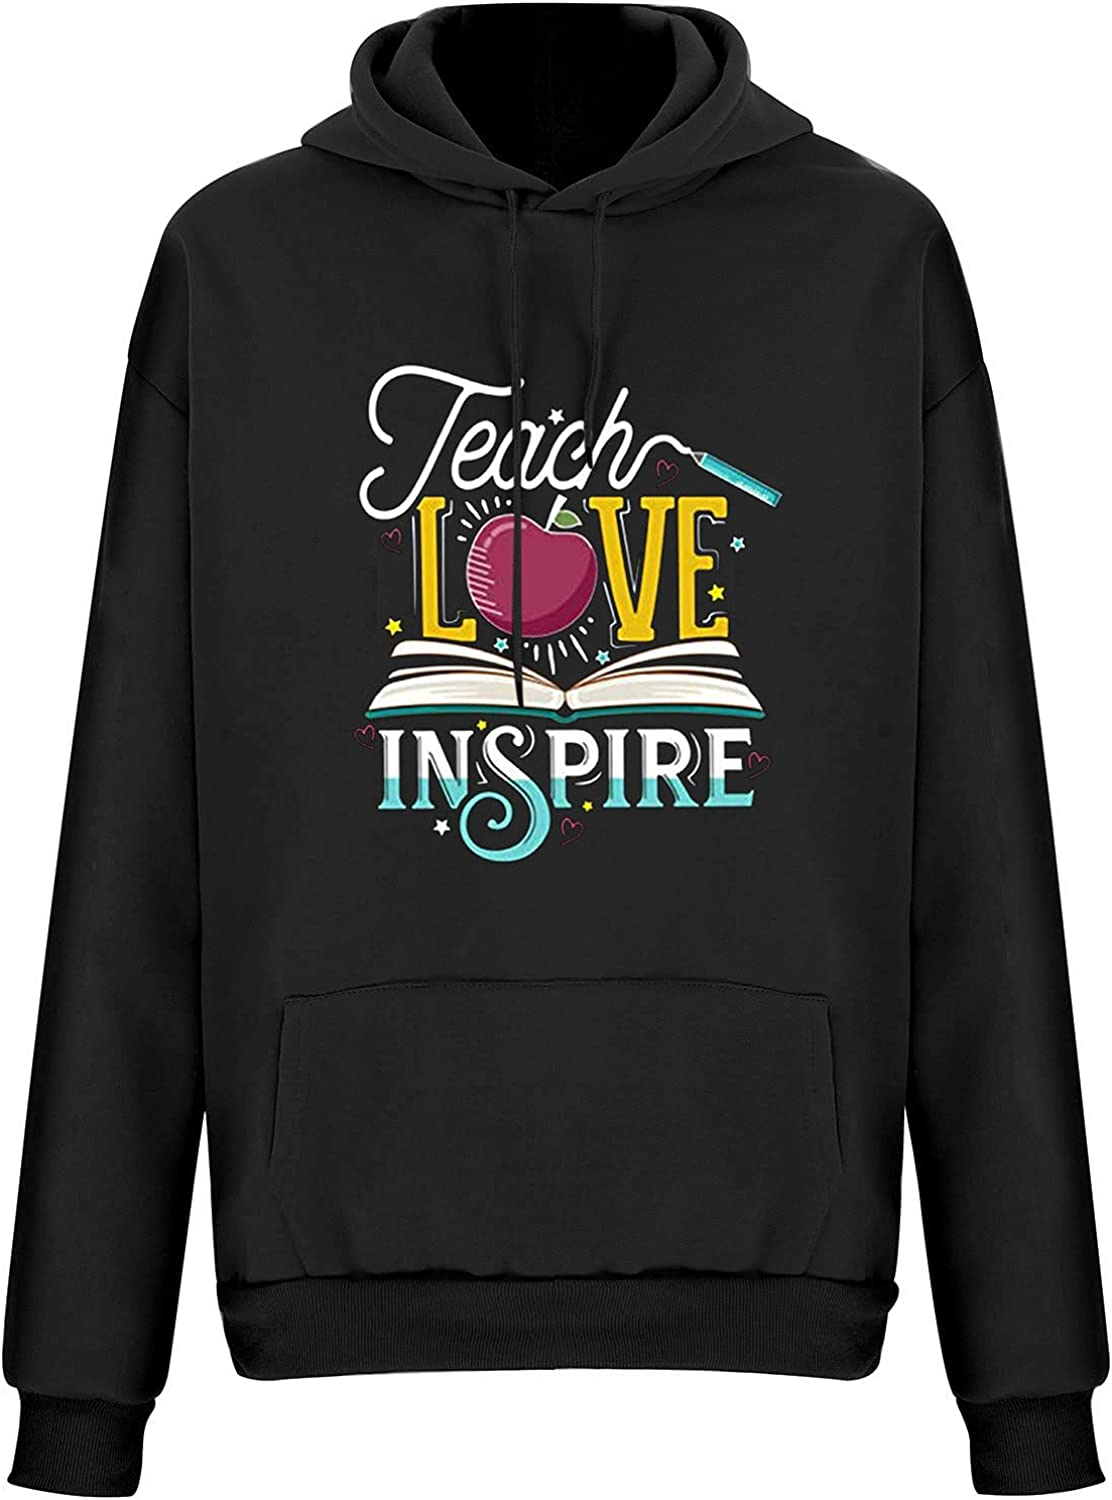 Women Long Sleeve Hooded Sweatshirts, Drawstring Casual Retro Hoodies Early Fall Teacher Athletic Pullover Blouse Tops